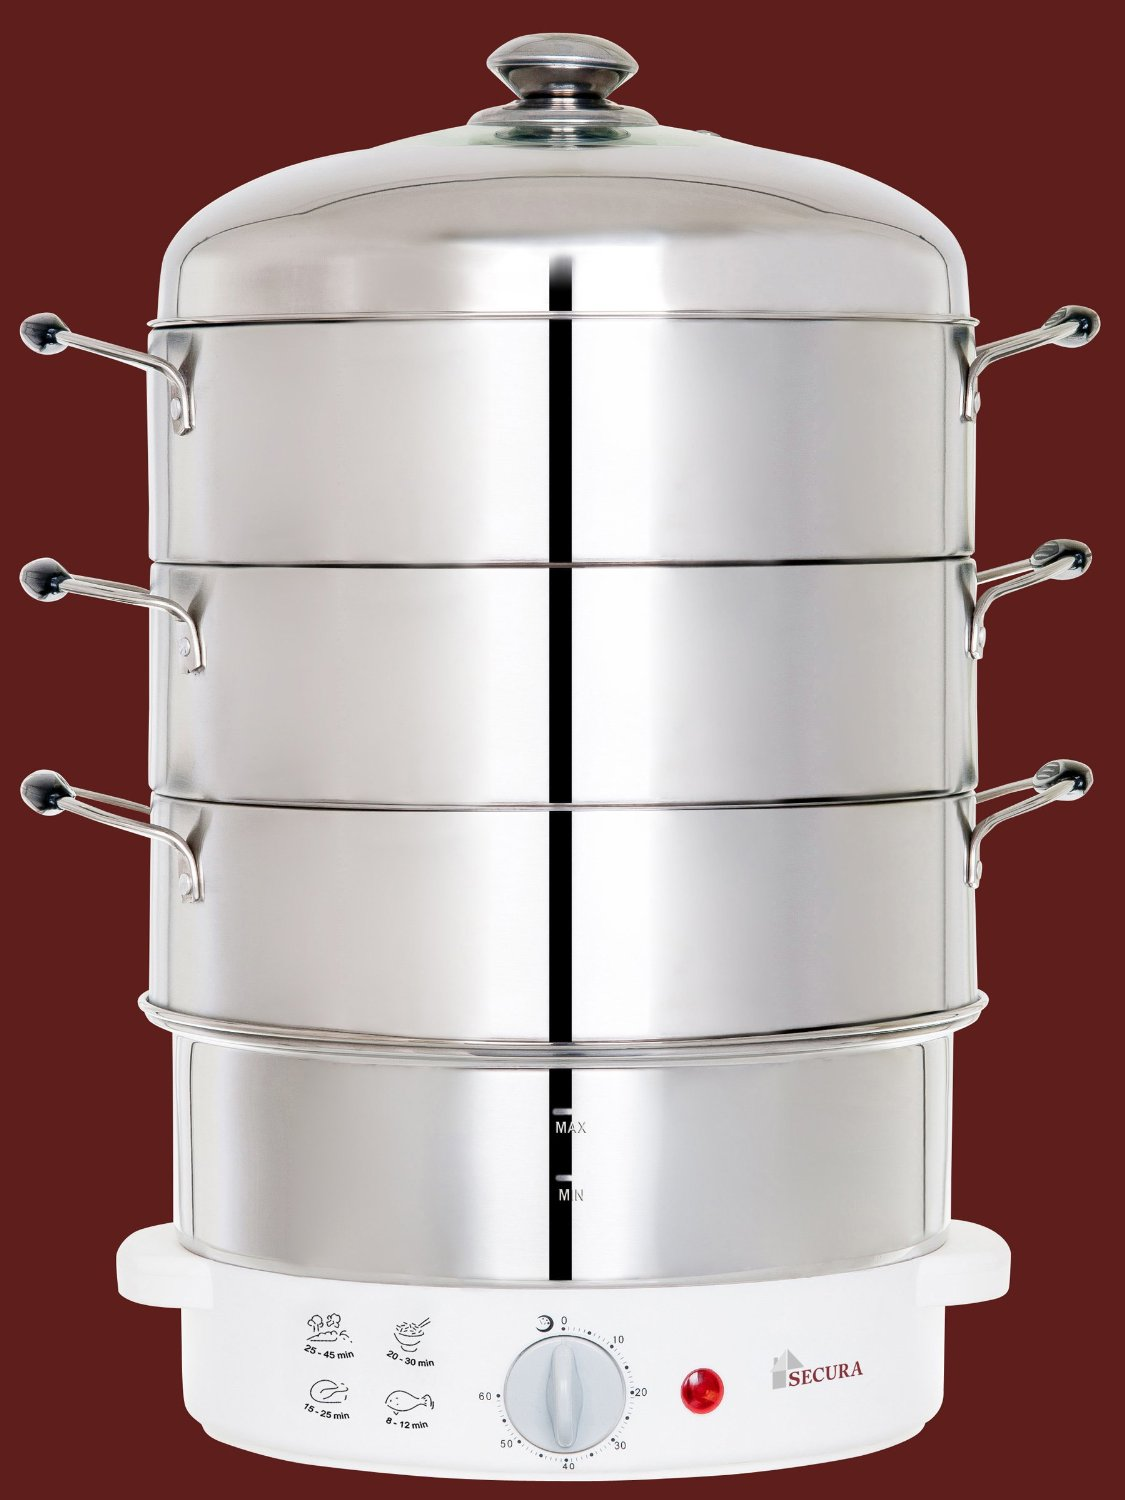 3 Tier Electric Steamer ~ Secura tier stainless steel food steamer quarts rice